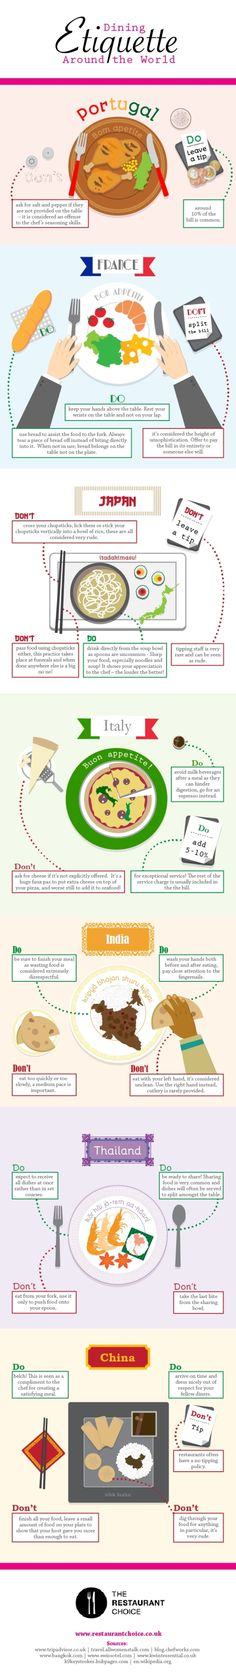 Infographic Of Do's And Dont's For Dining Abroad Will Let Travelers Pass As Locals - PSFK